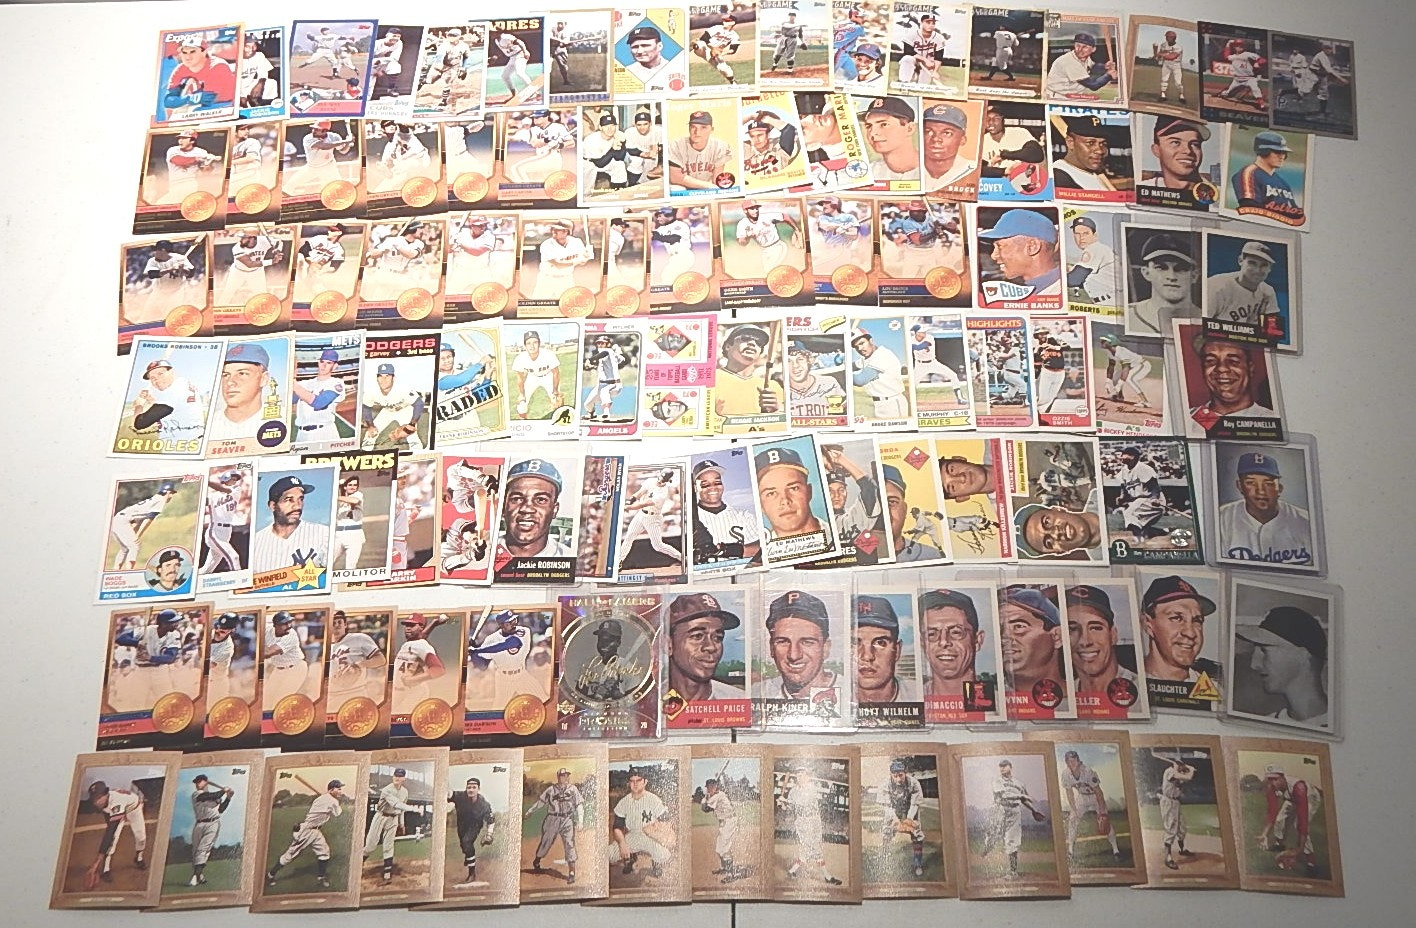 Large Hall of Fame Baseball Card Collection from 2000's